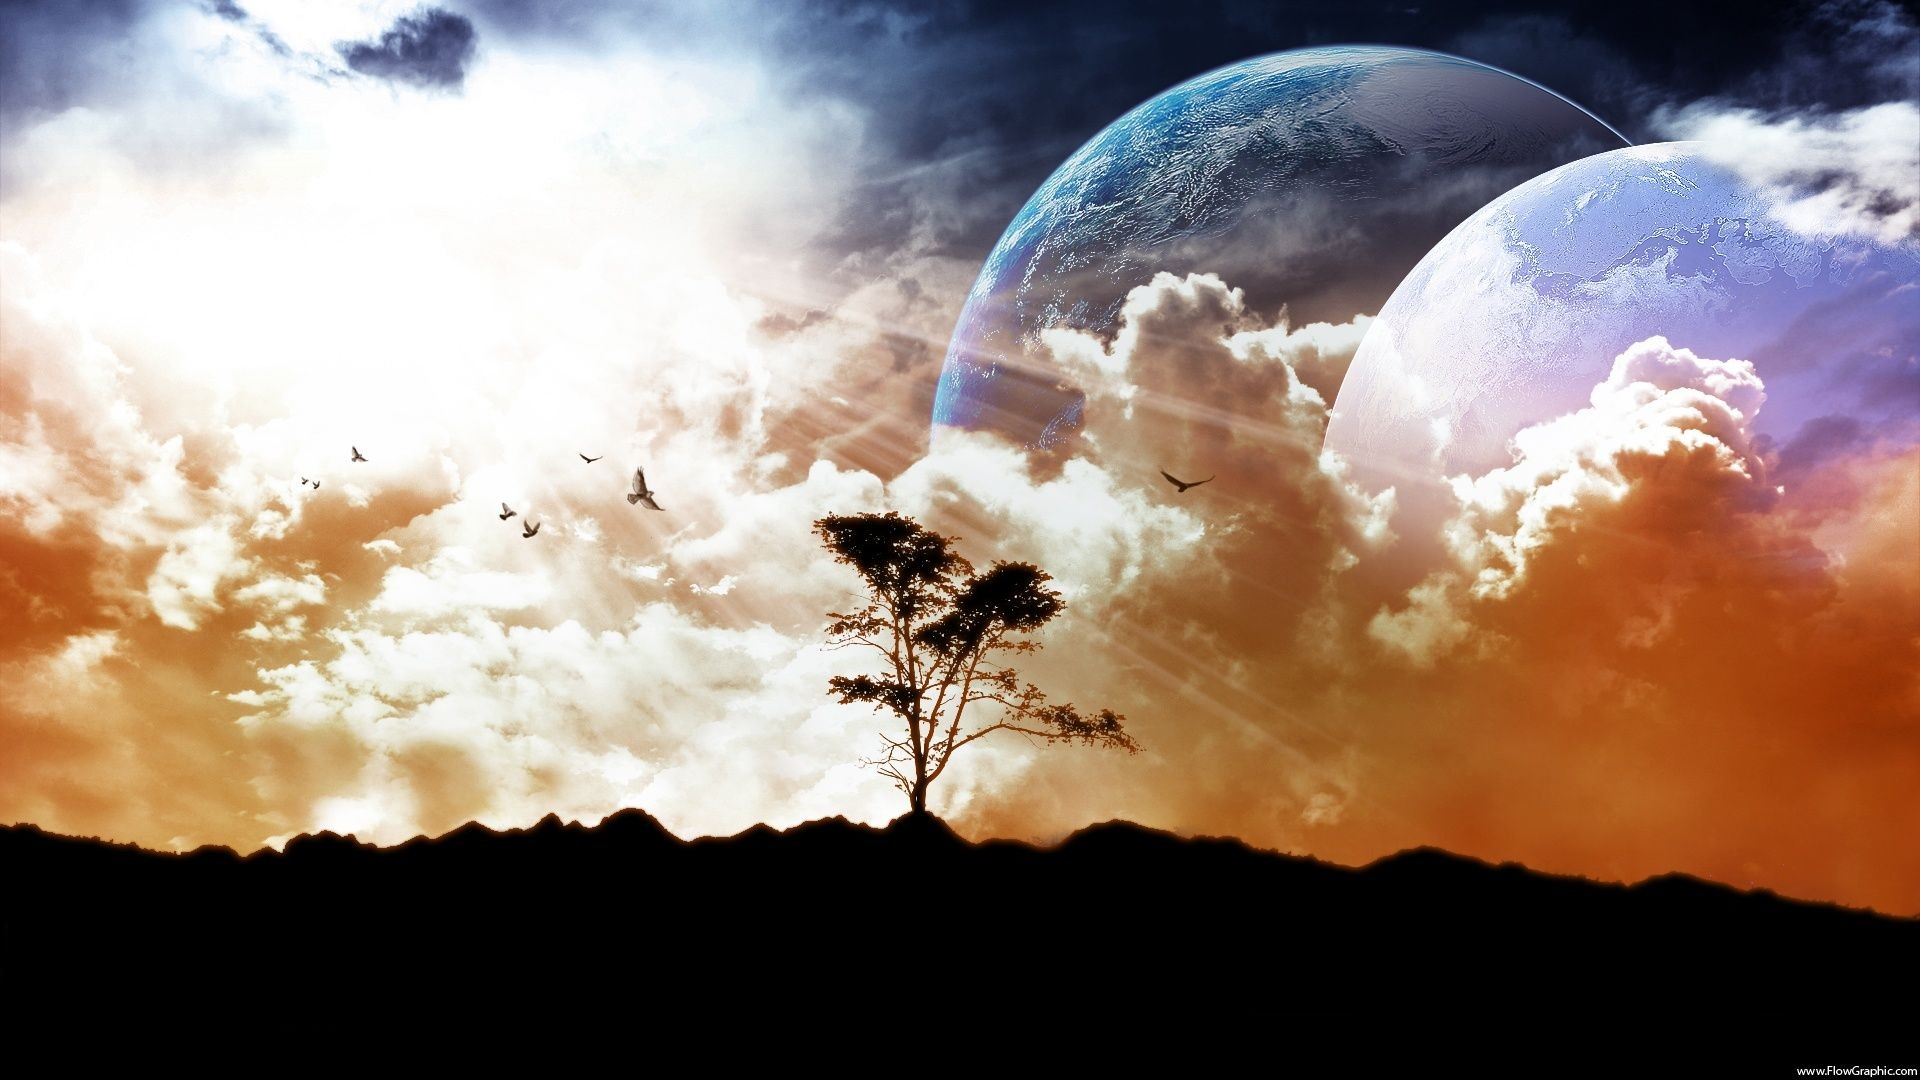 Ipad Retina Wallpapers Space: 44+ HD Real Space Wallpapers 1080p ·① Download Free